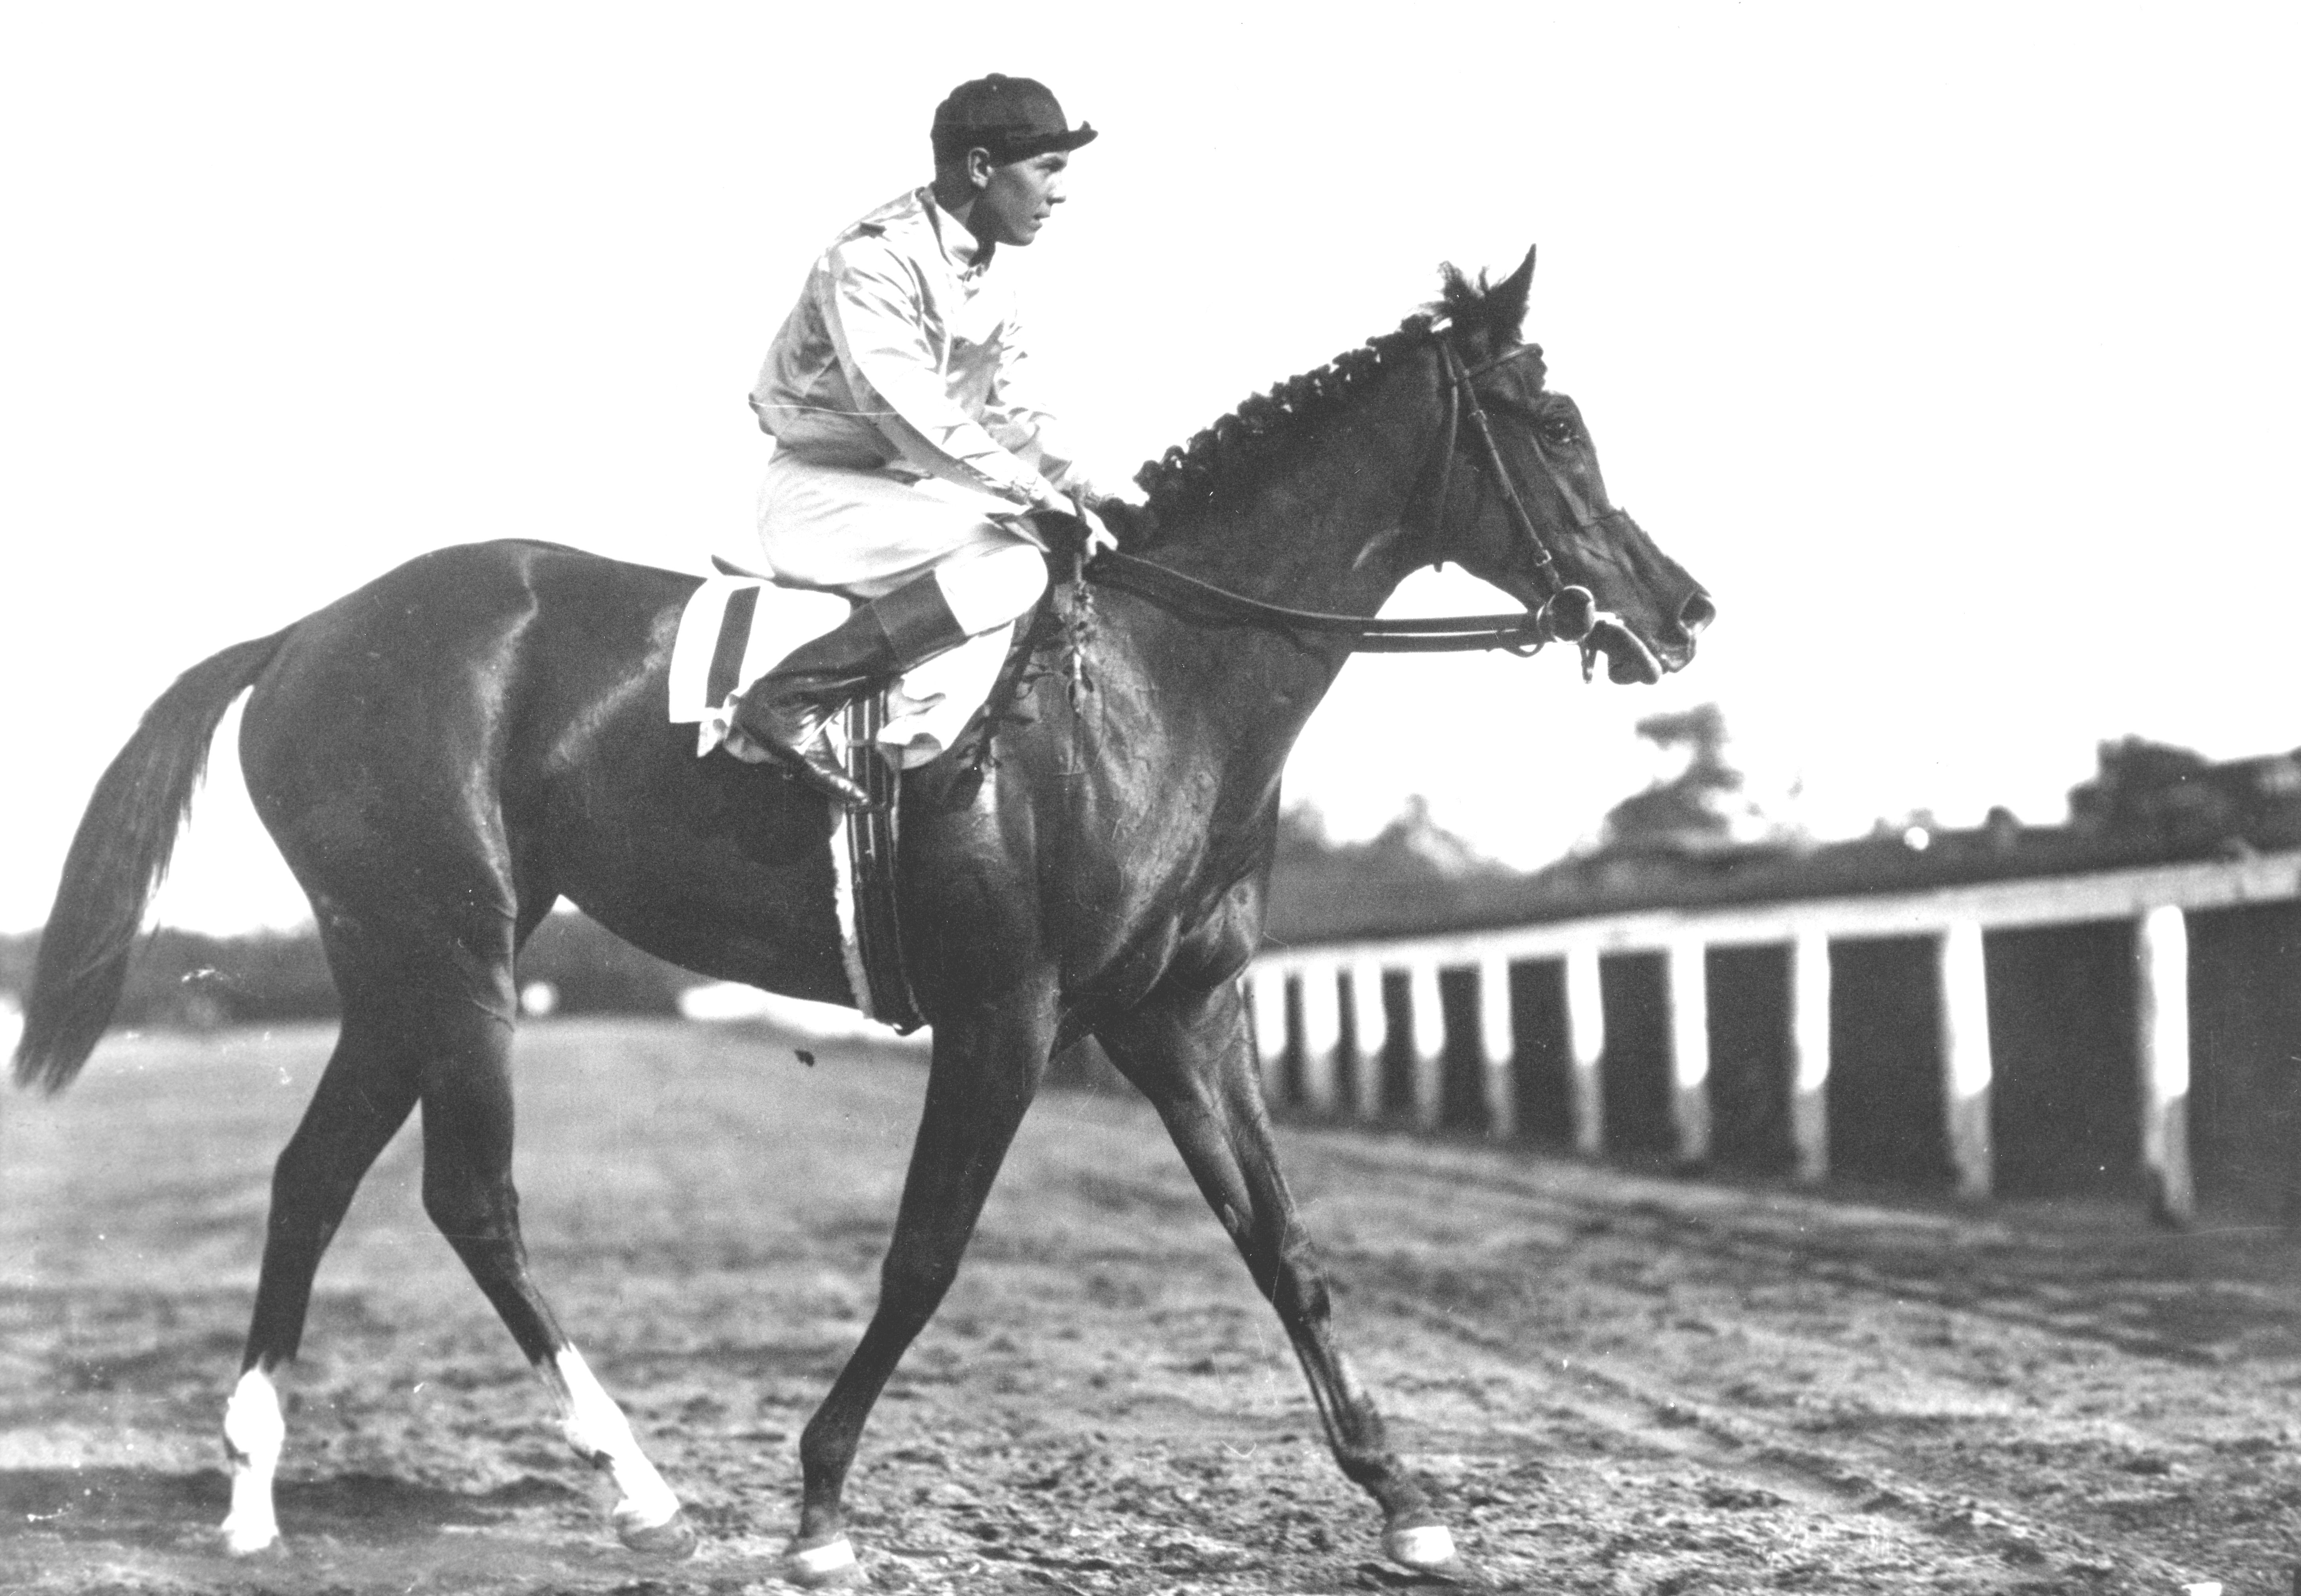 Top Flight with Raymond Workman up (Keeneland Library Cook Collection/Museum Collection)